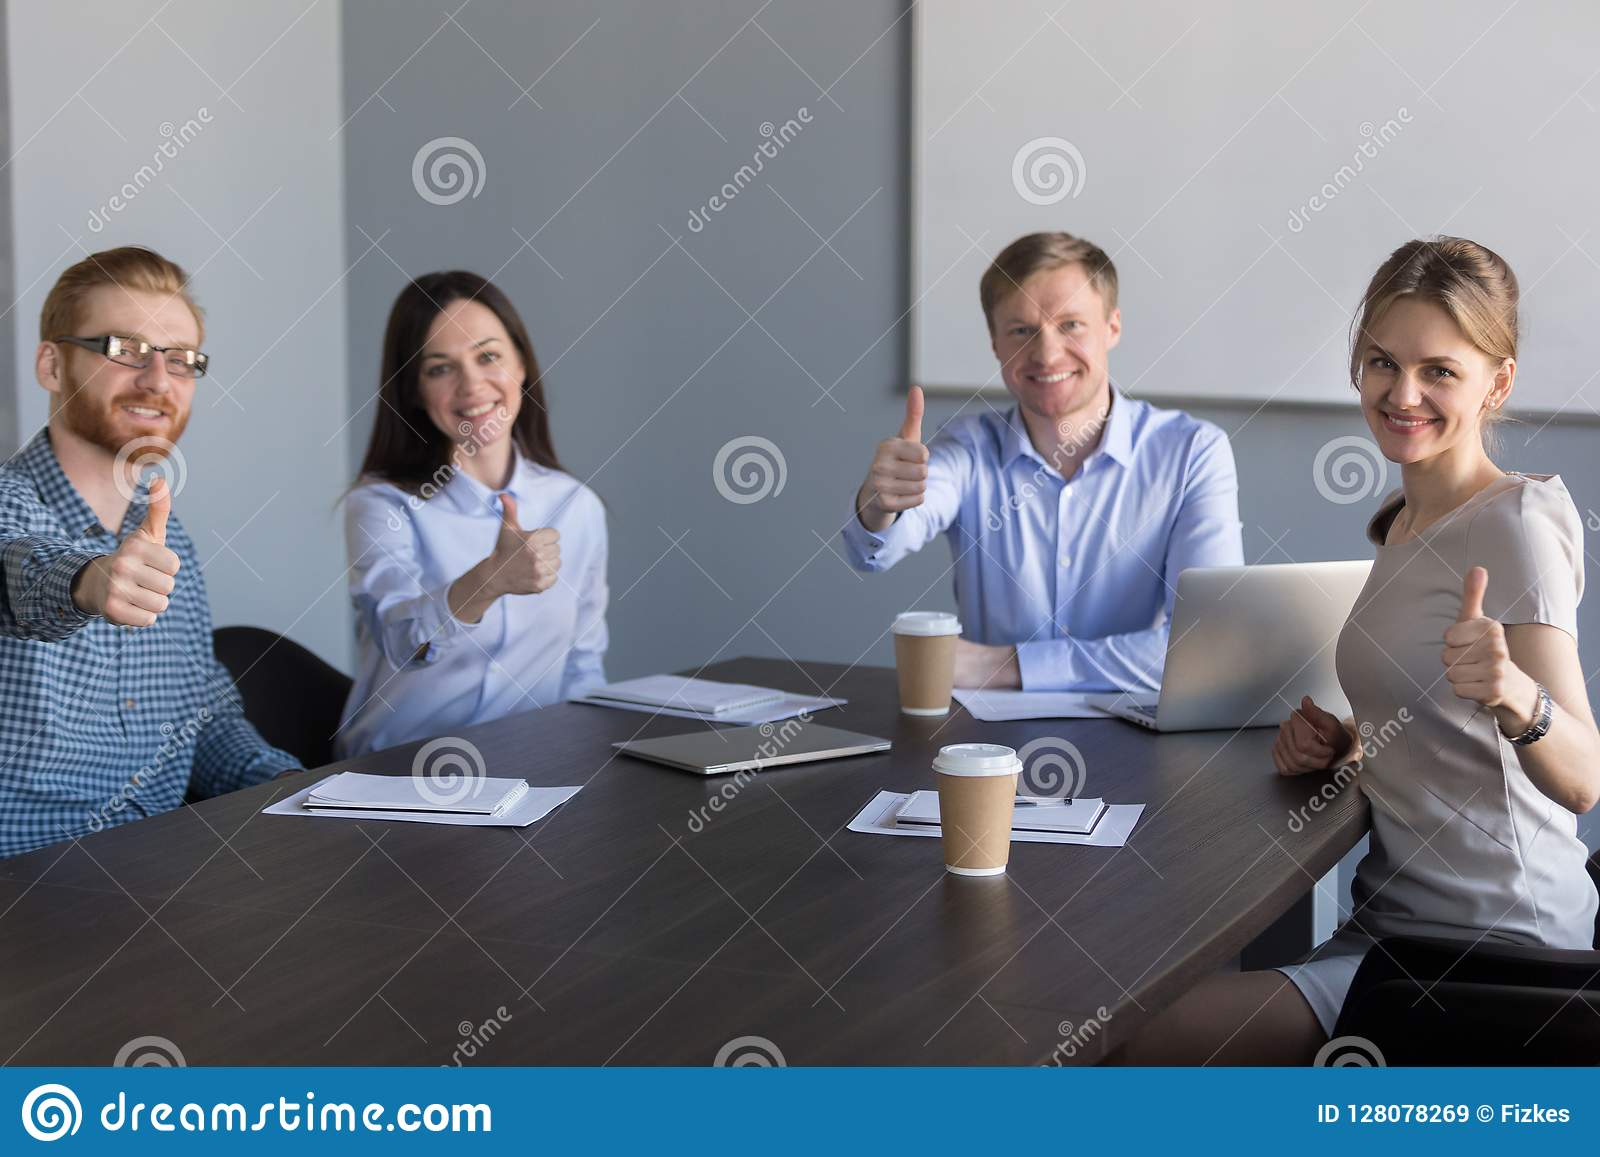 Business team looking at camera showing thumbs up at meeting